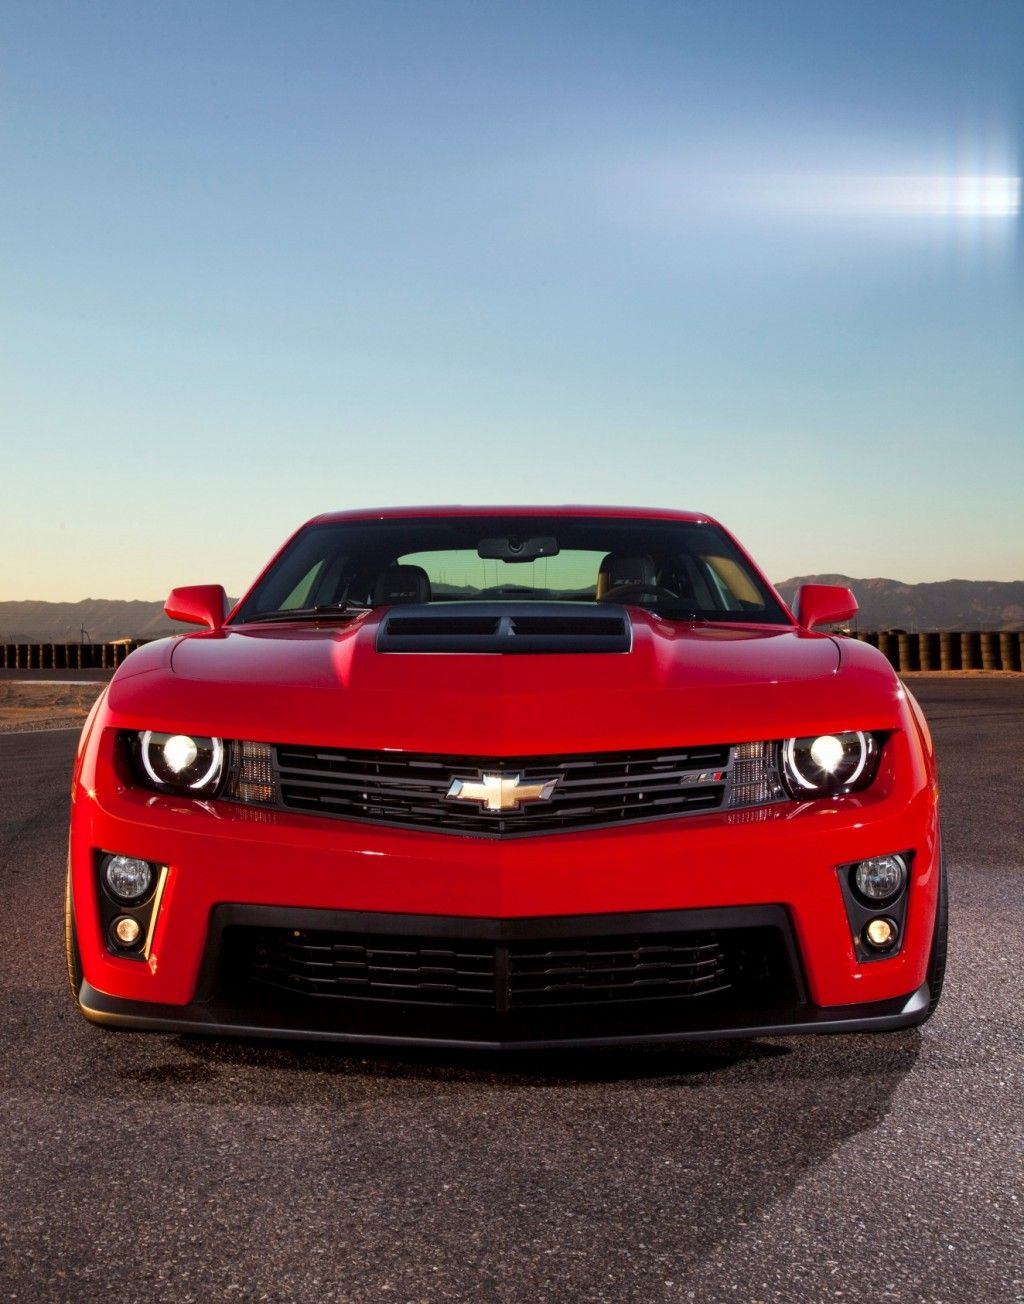 Camaro Zl1 With The Magnetic Suspension Tech This Car Has